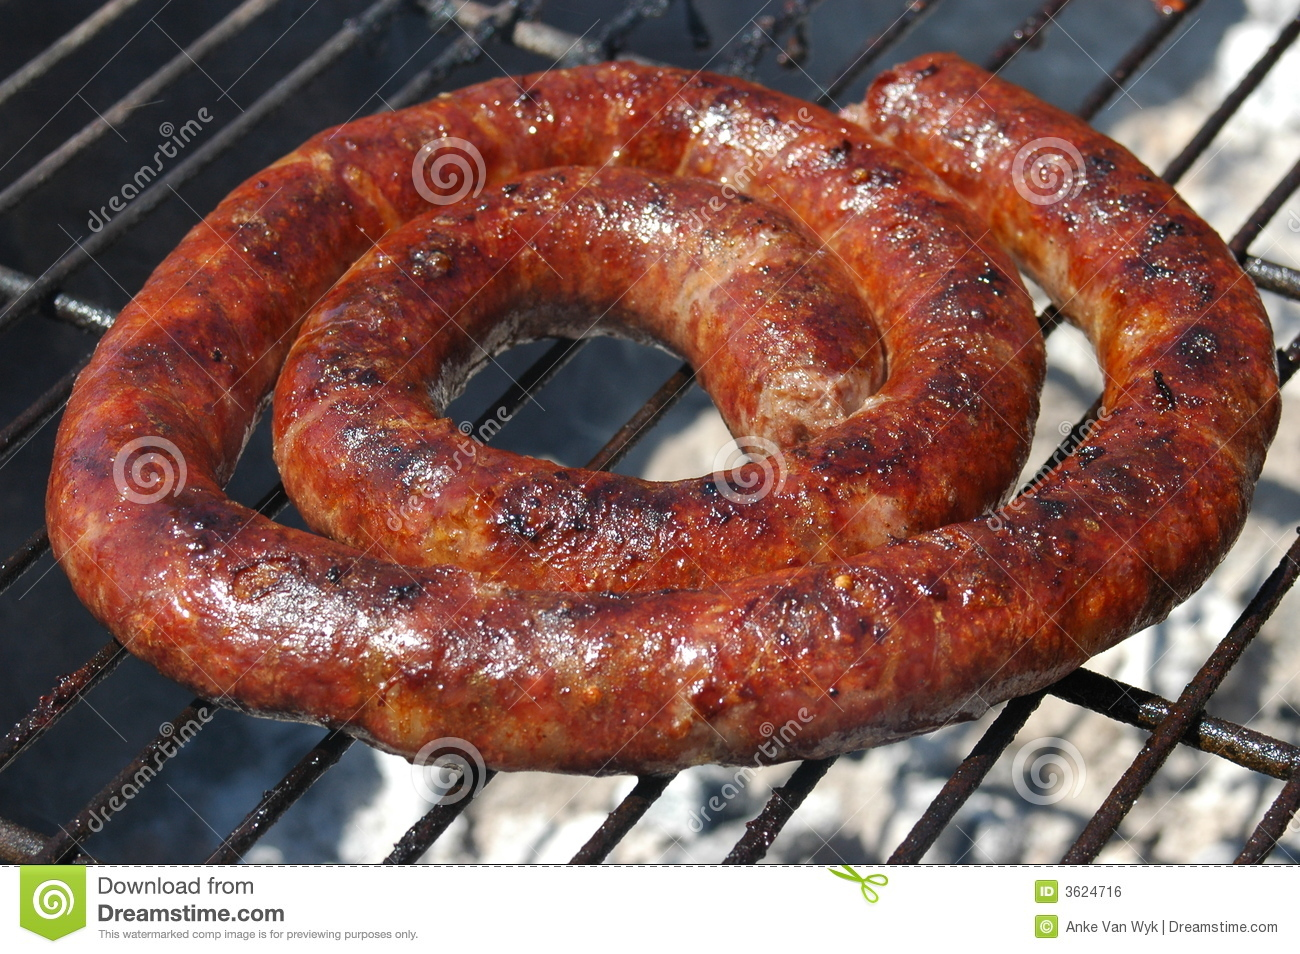 ... Springbok Boerewors on a barbecue outdoors in summer in South Africa